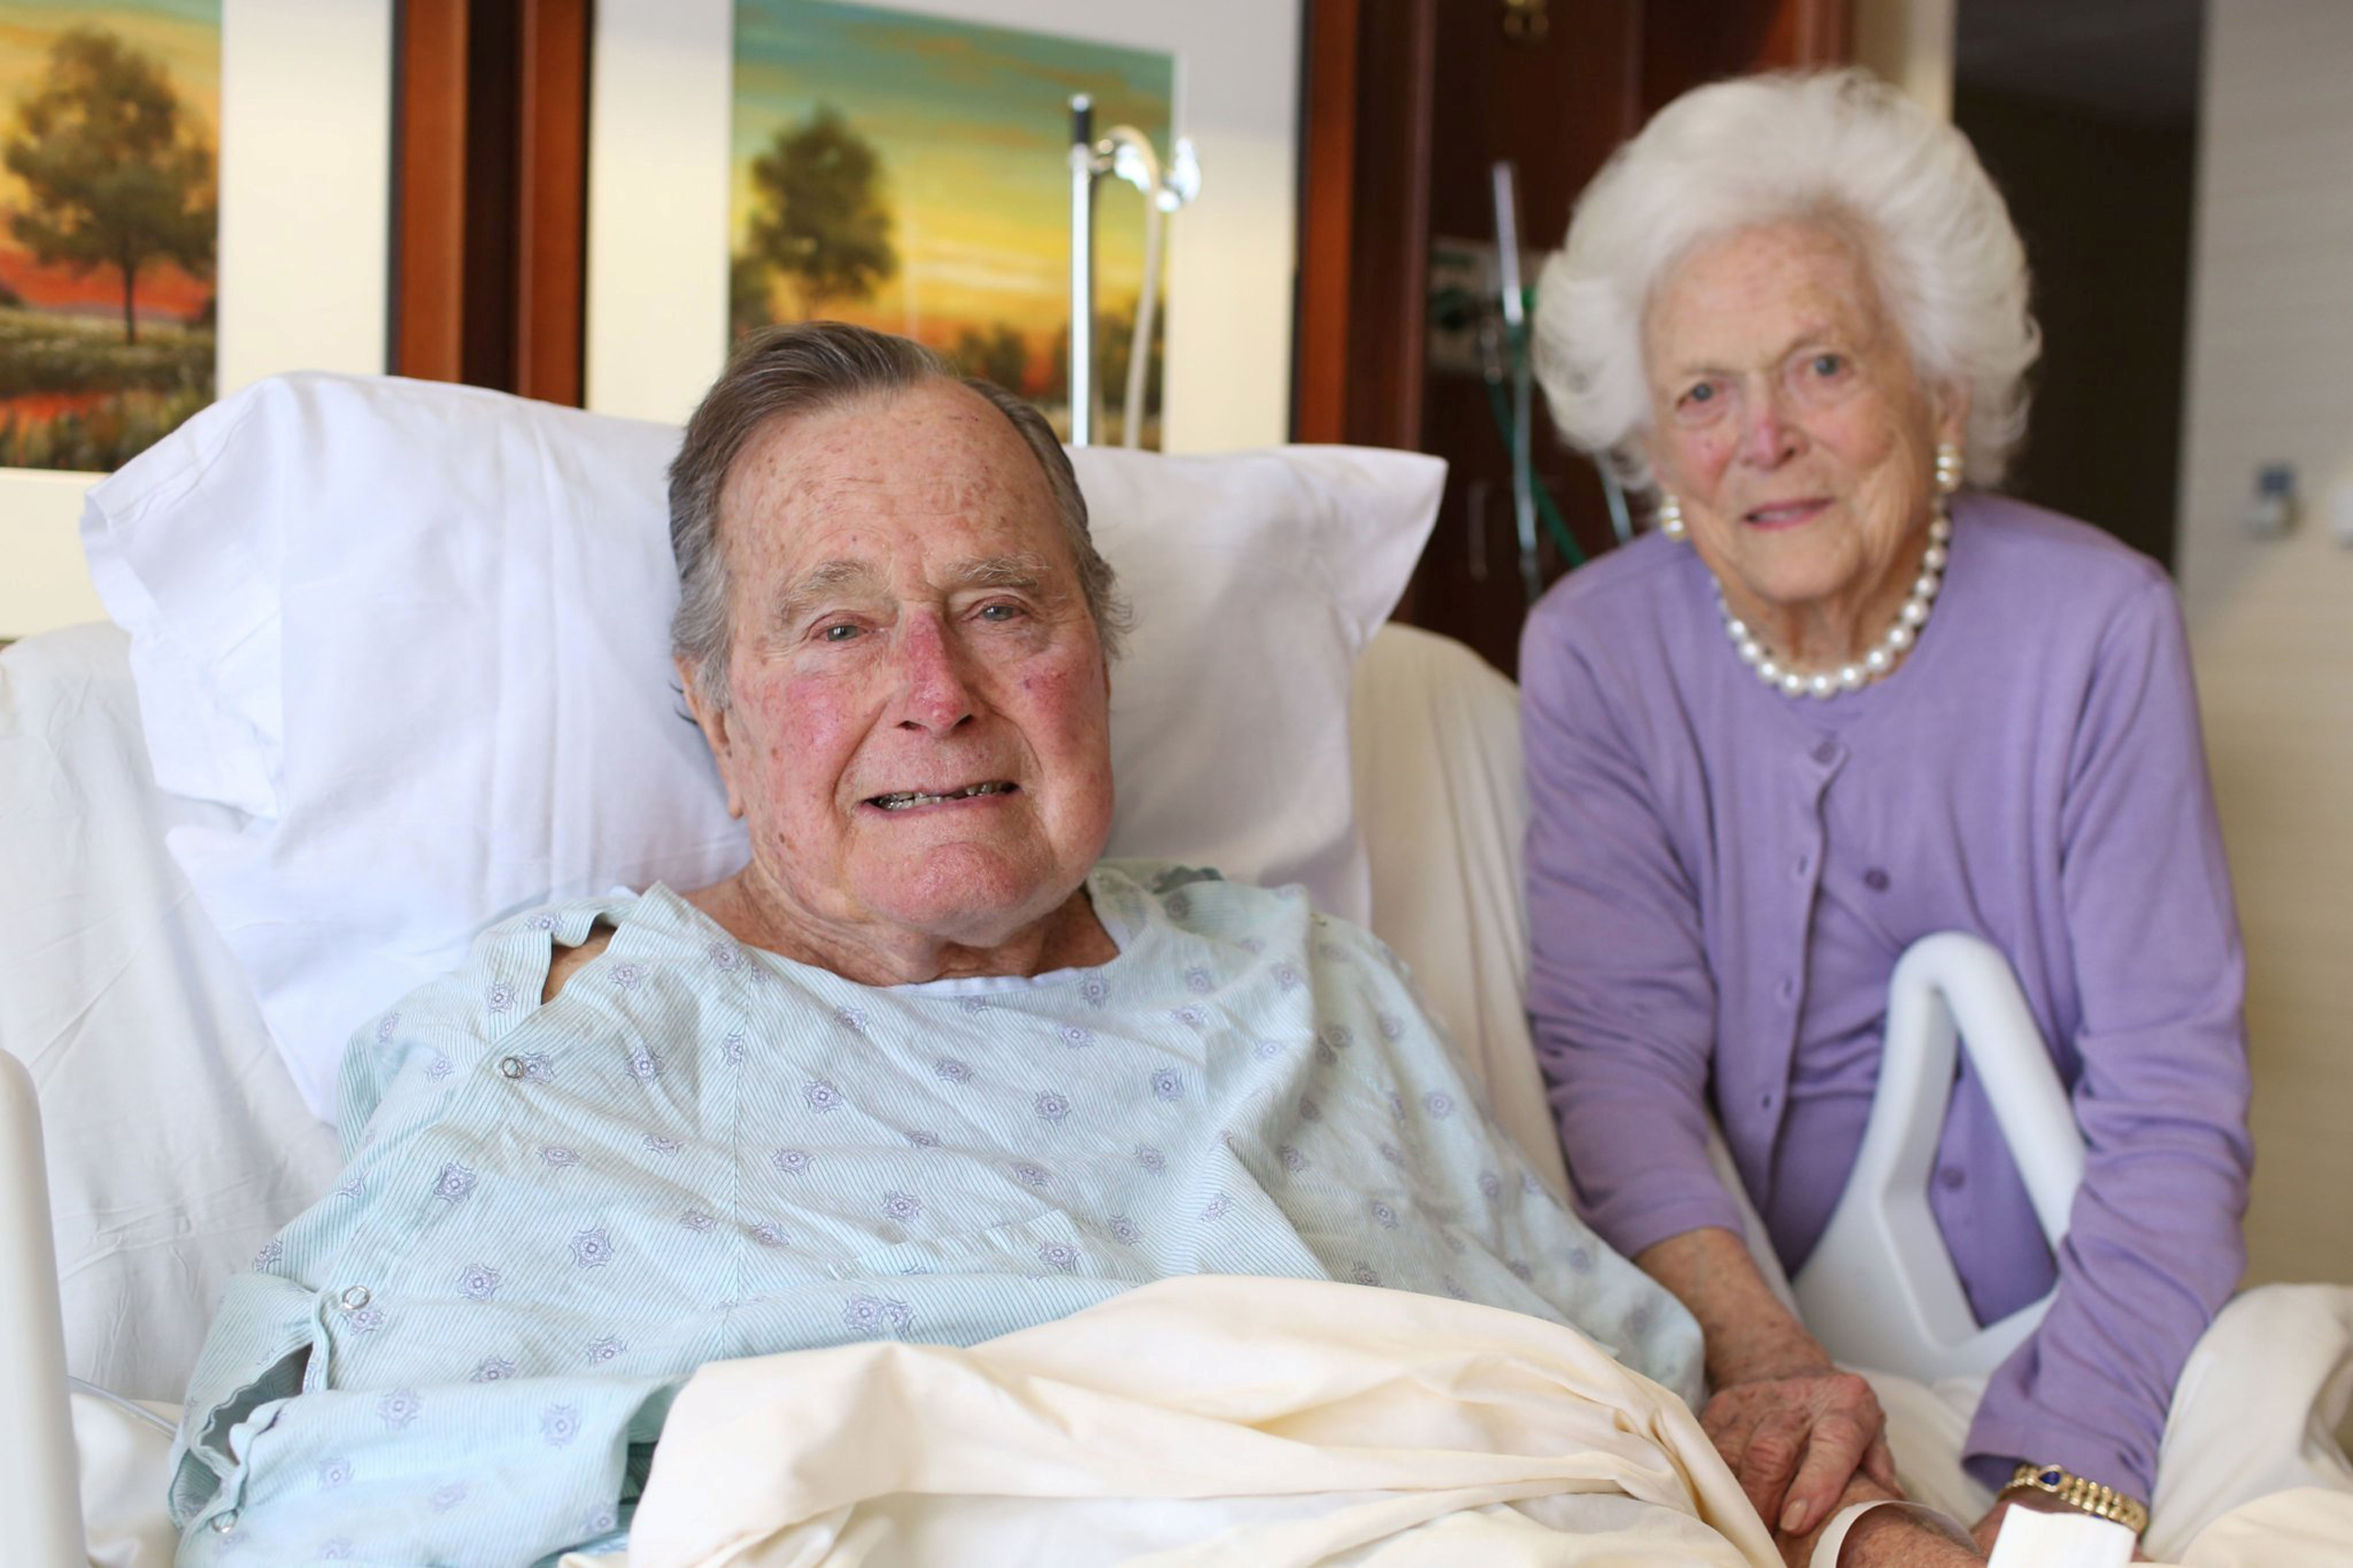 Former President George H.W. Bush and his wife Barbara Bush are pictured in Houston Methodist Hospital in Houston on Jan. 23, 2017.